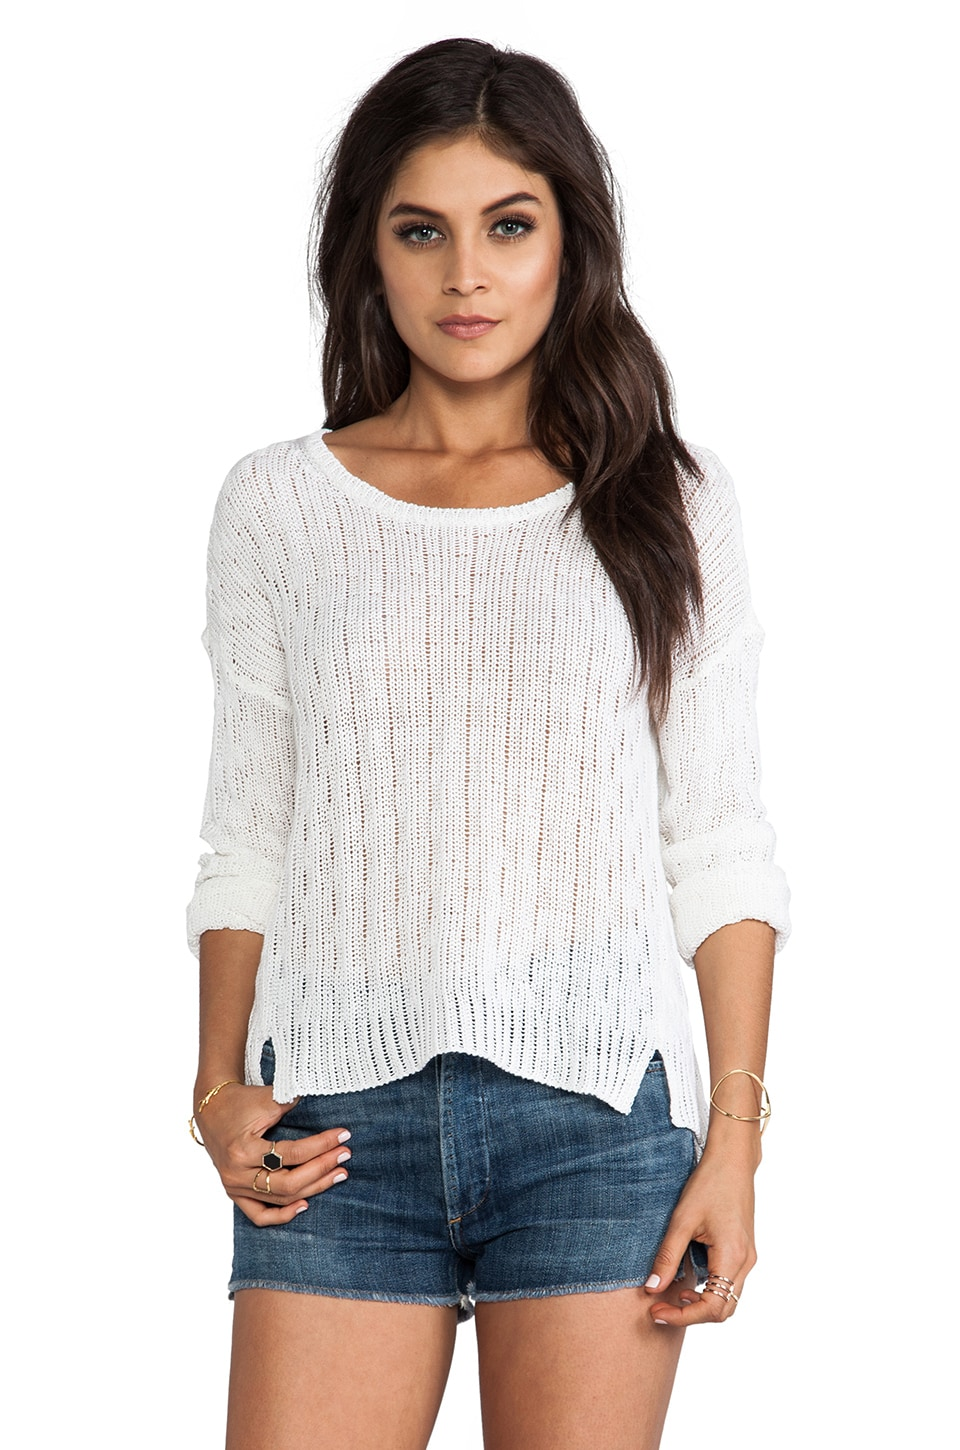 C&C California Long Sleeve Cropped Sweater in White